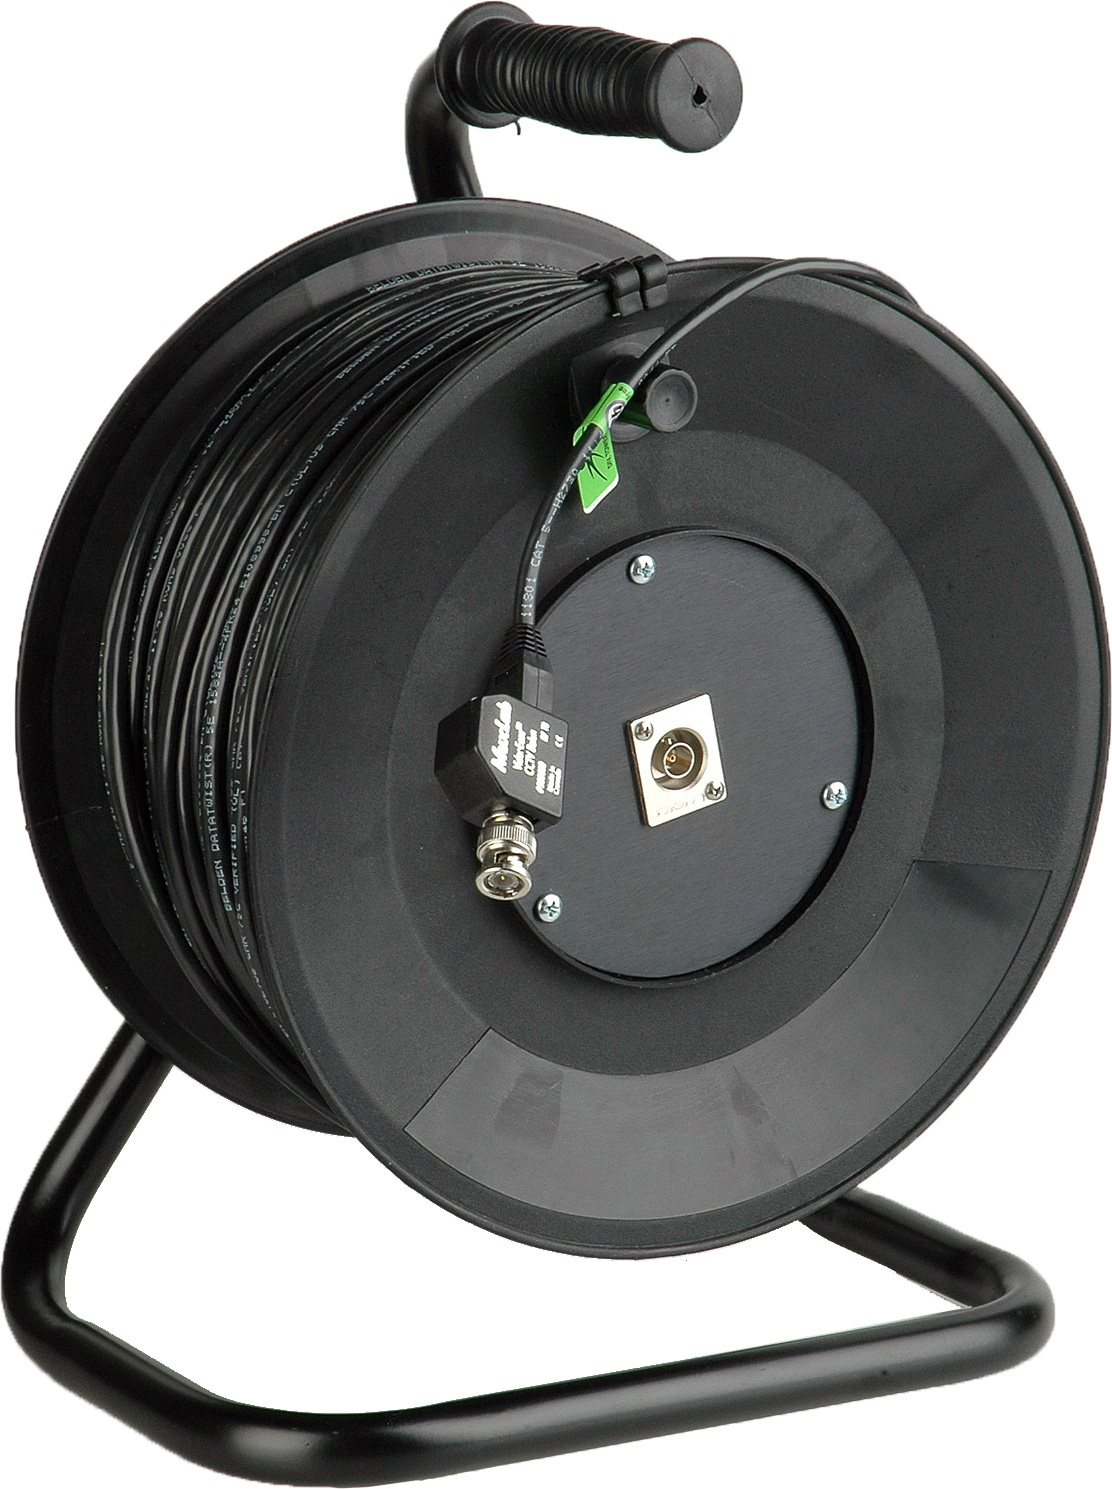 Connect-N-Go Reel Composite Video Over Belden 1583A Cat5e Cable 500 Ft